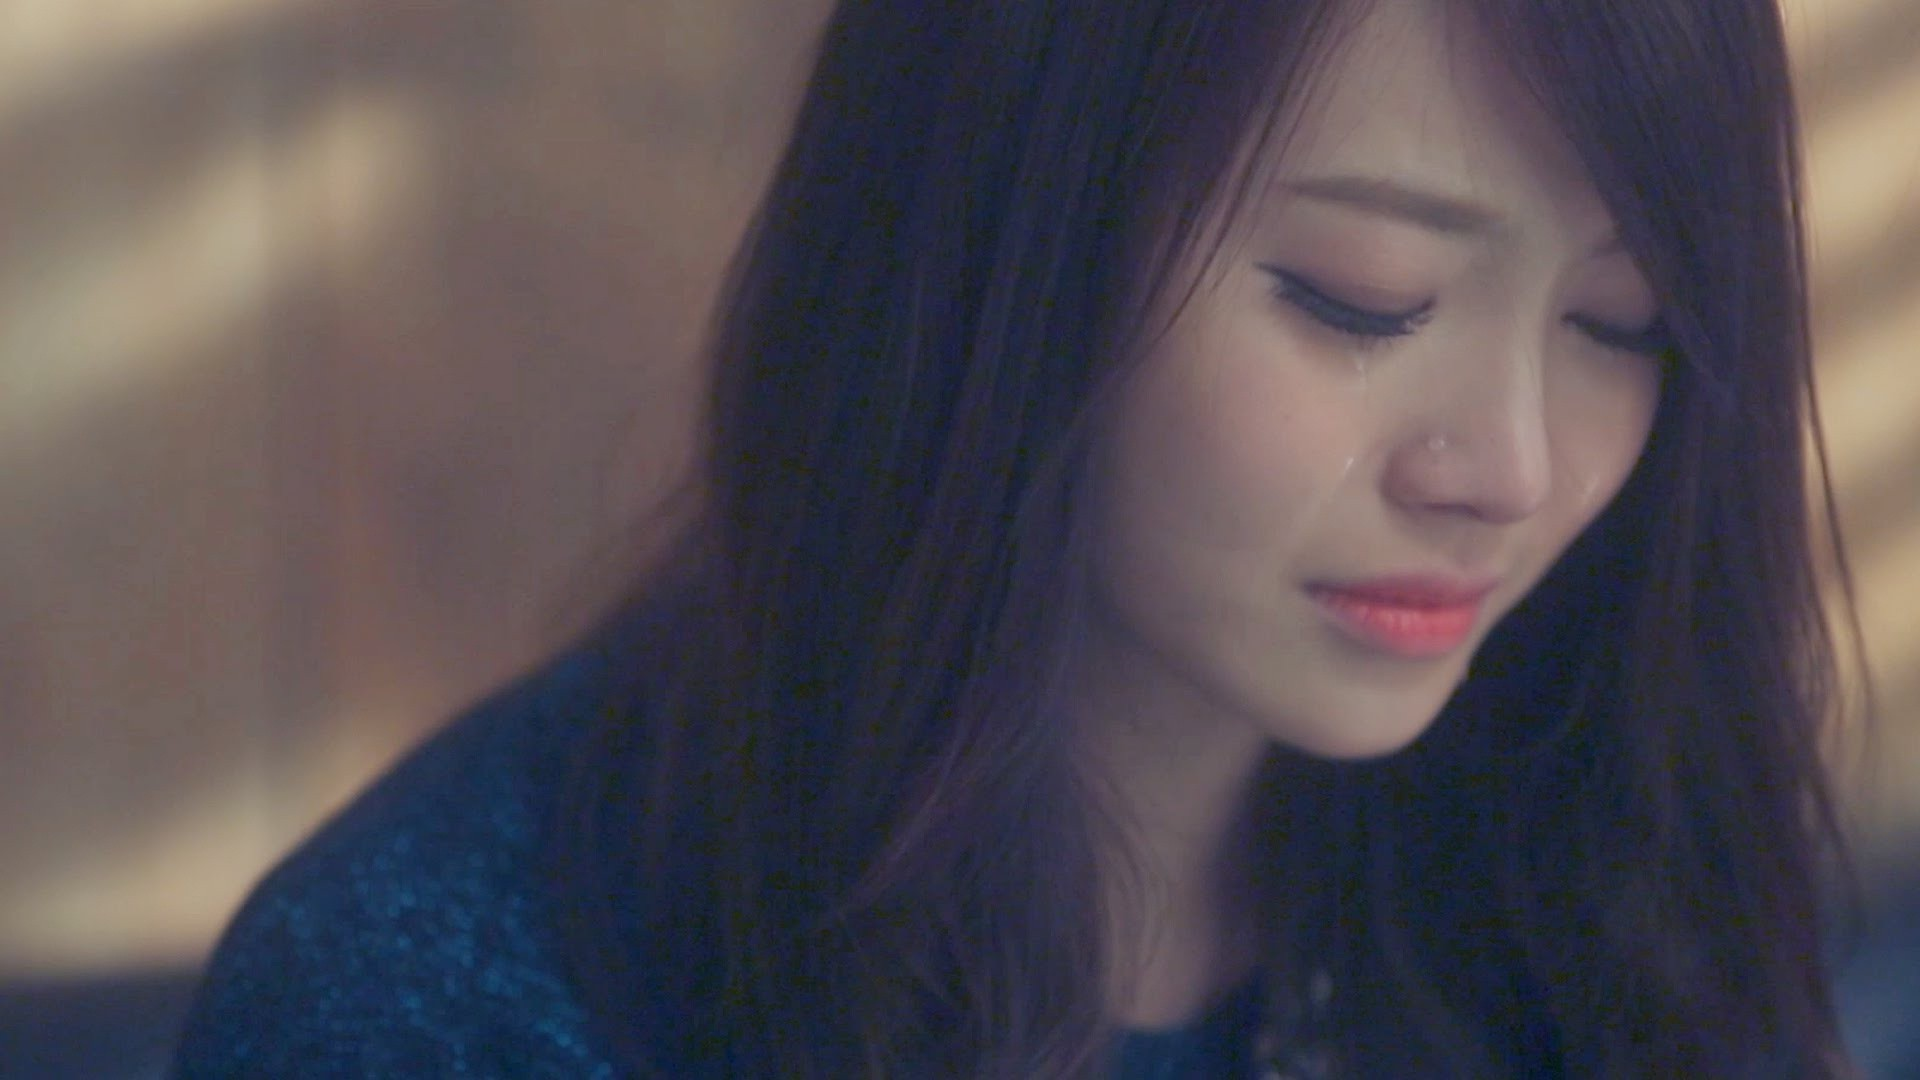 45187996-crying-girl-images